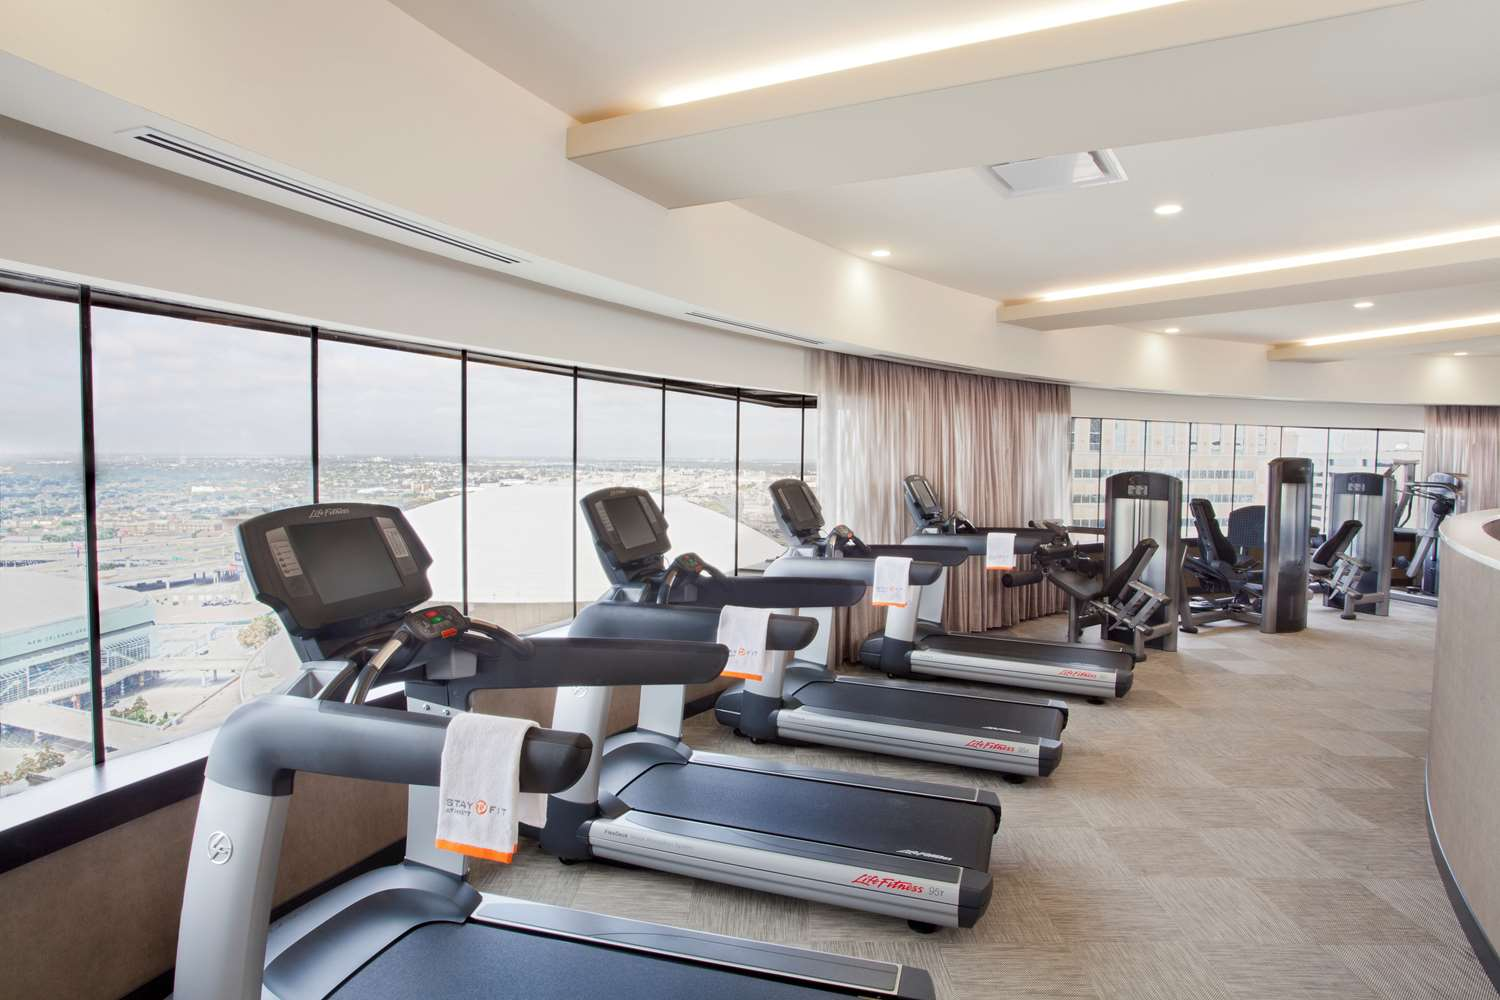 Fitness/ Exercise Room - Hyatt Regency Hotel New Orleans